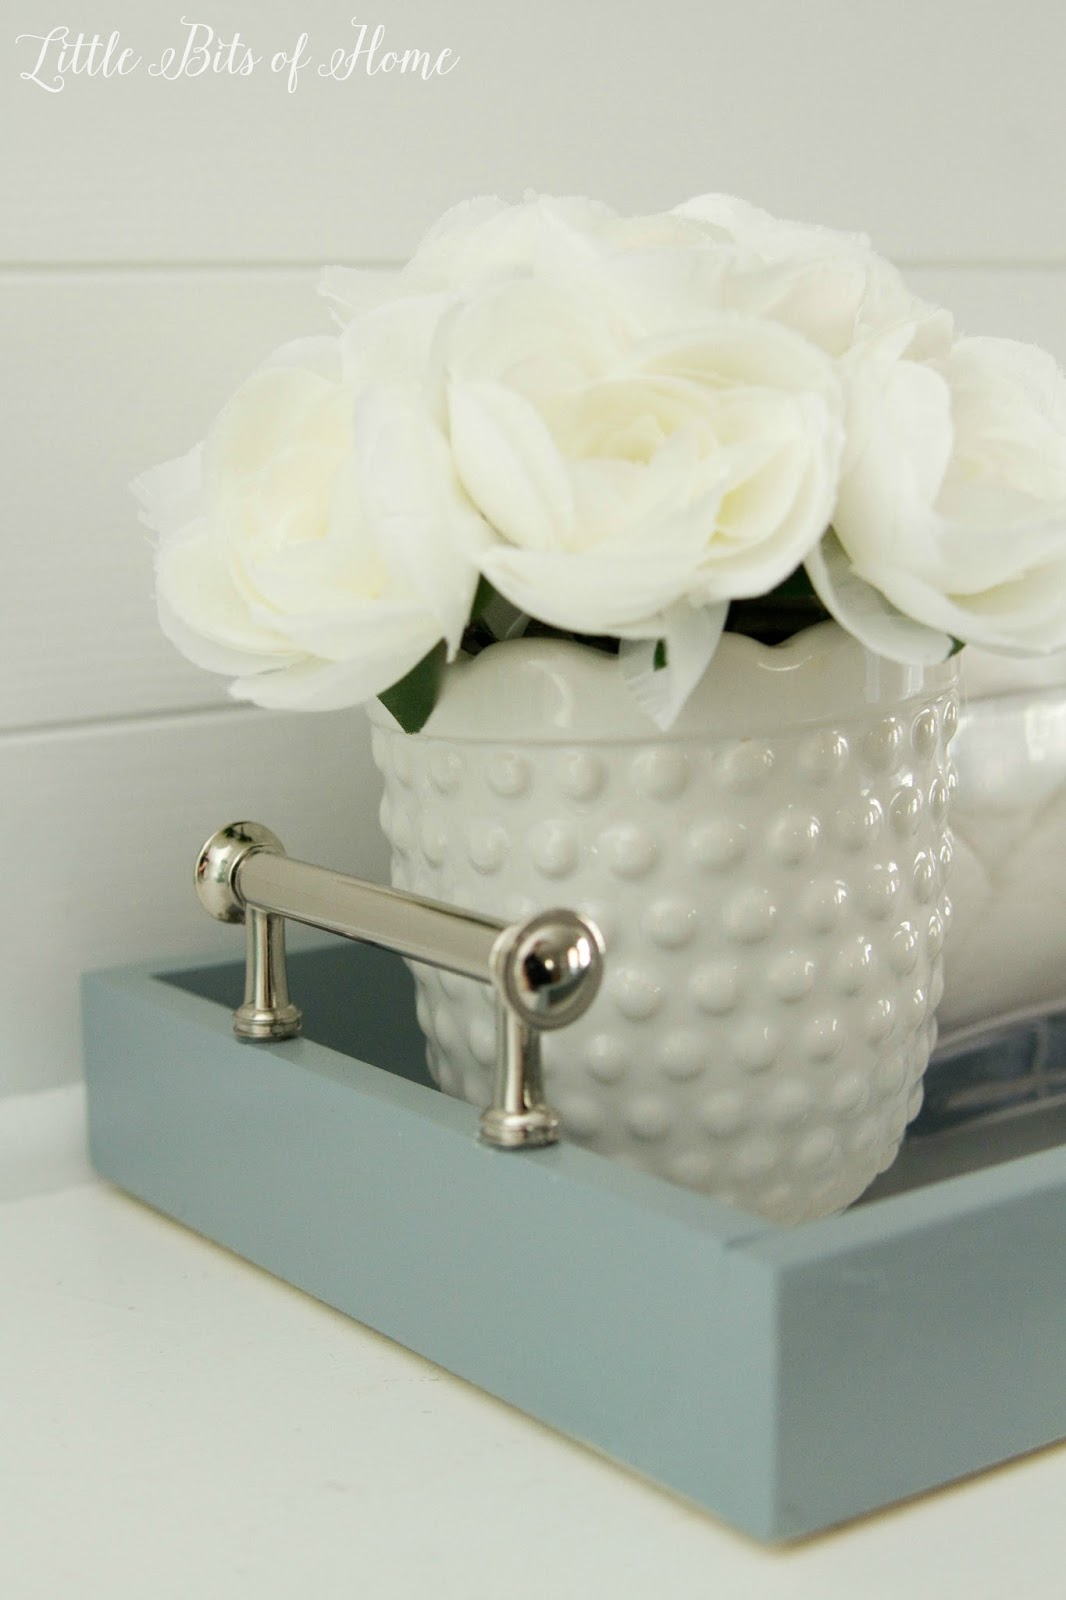 Little Bits Of Home: Bathroom Countertop Tray